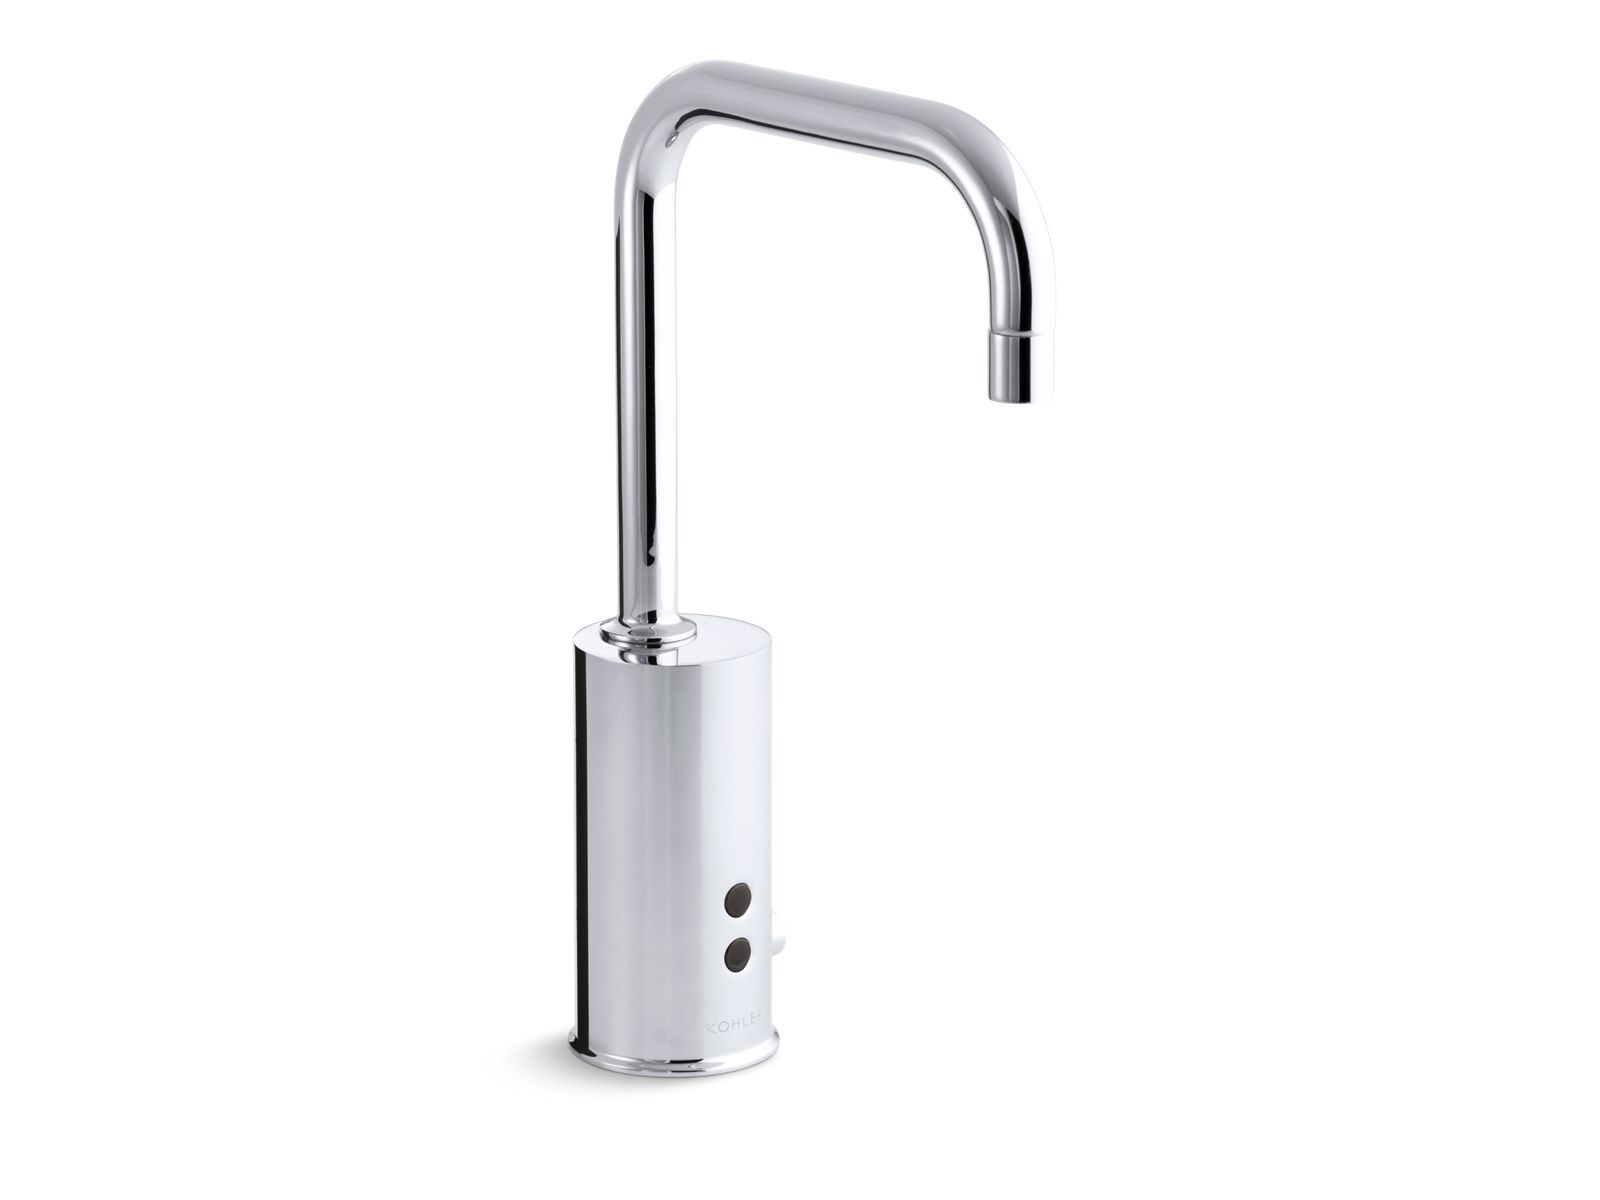 Gooseneck Single-Hole Touchless DC-Powered Commercial Faucet with Insight Technology and Temperature Mixer